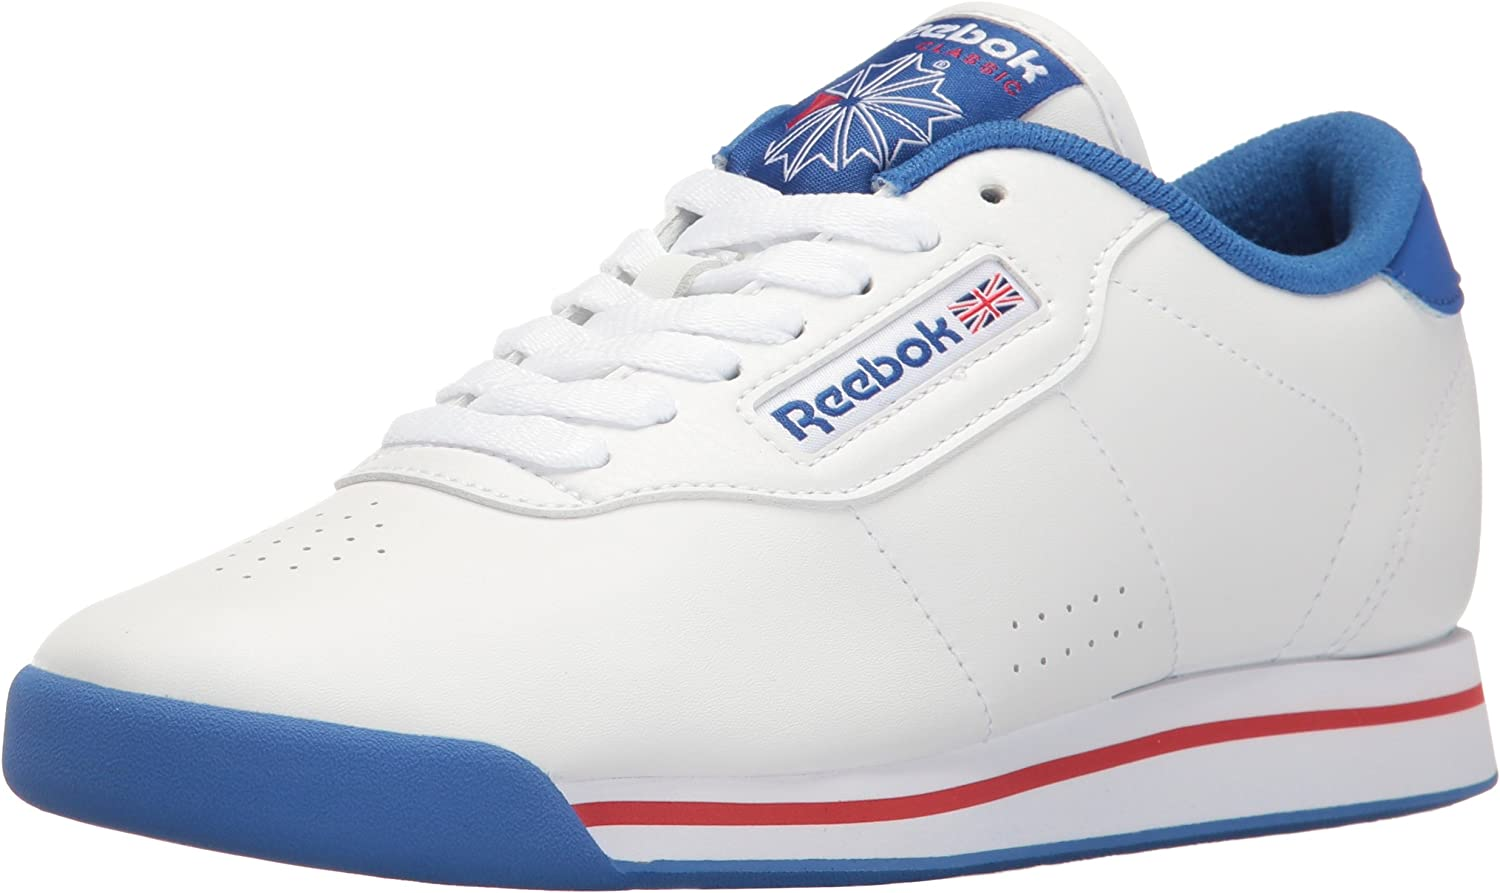 Vintage Sneakers, Retro Designs for Women Reebok Womens Princess Fitness Lace-Up Fashion Sneaker $36.00 AT vintagedancer.com